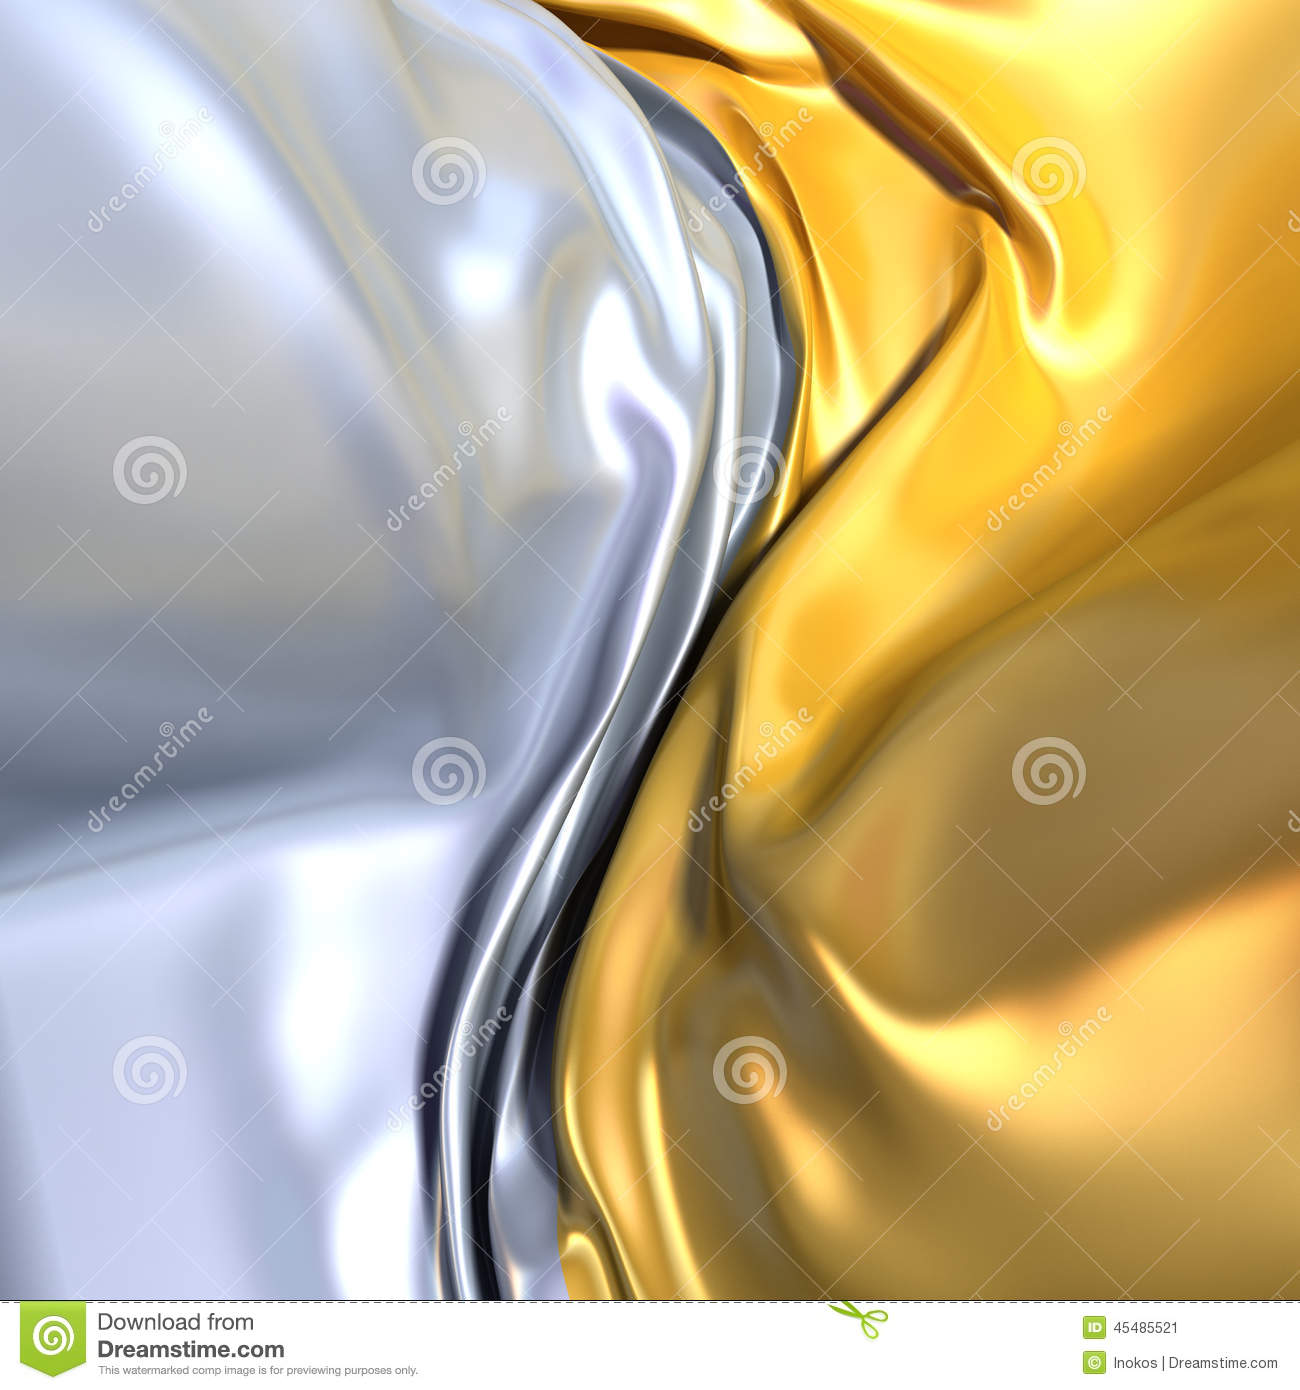 Gold And Silver Cloth Background Similar To Yin Yang Symbol Stock